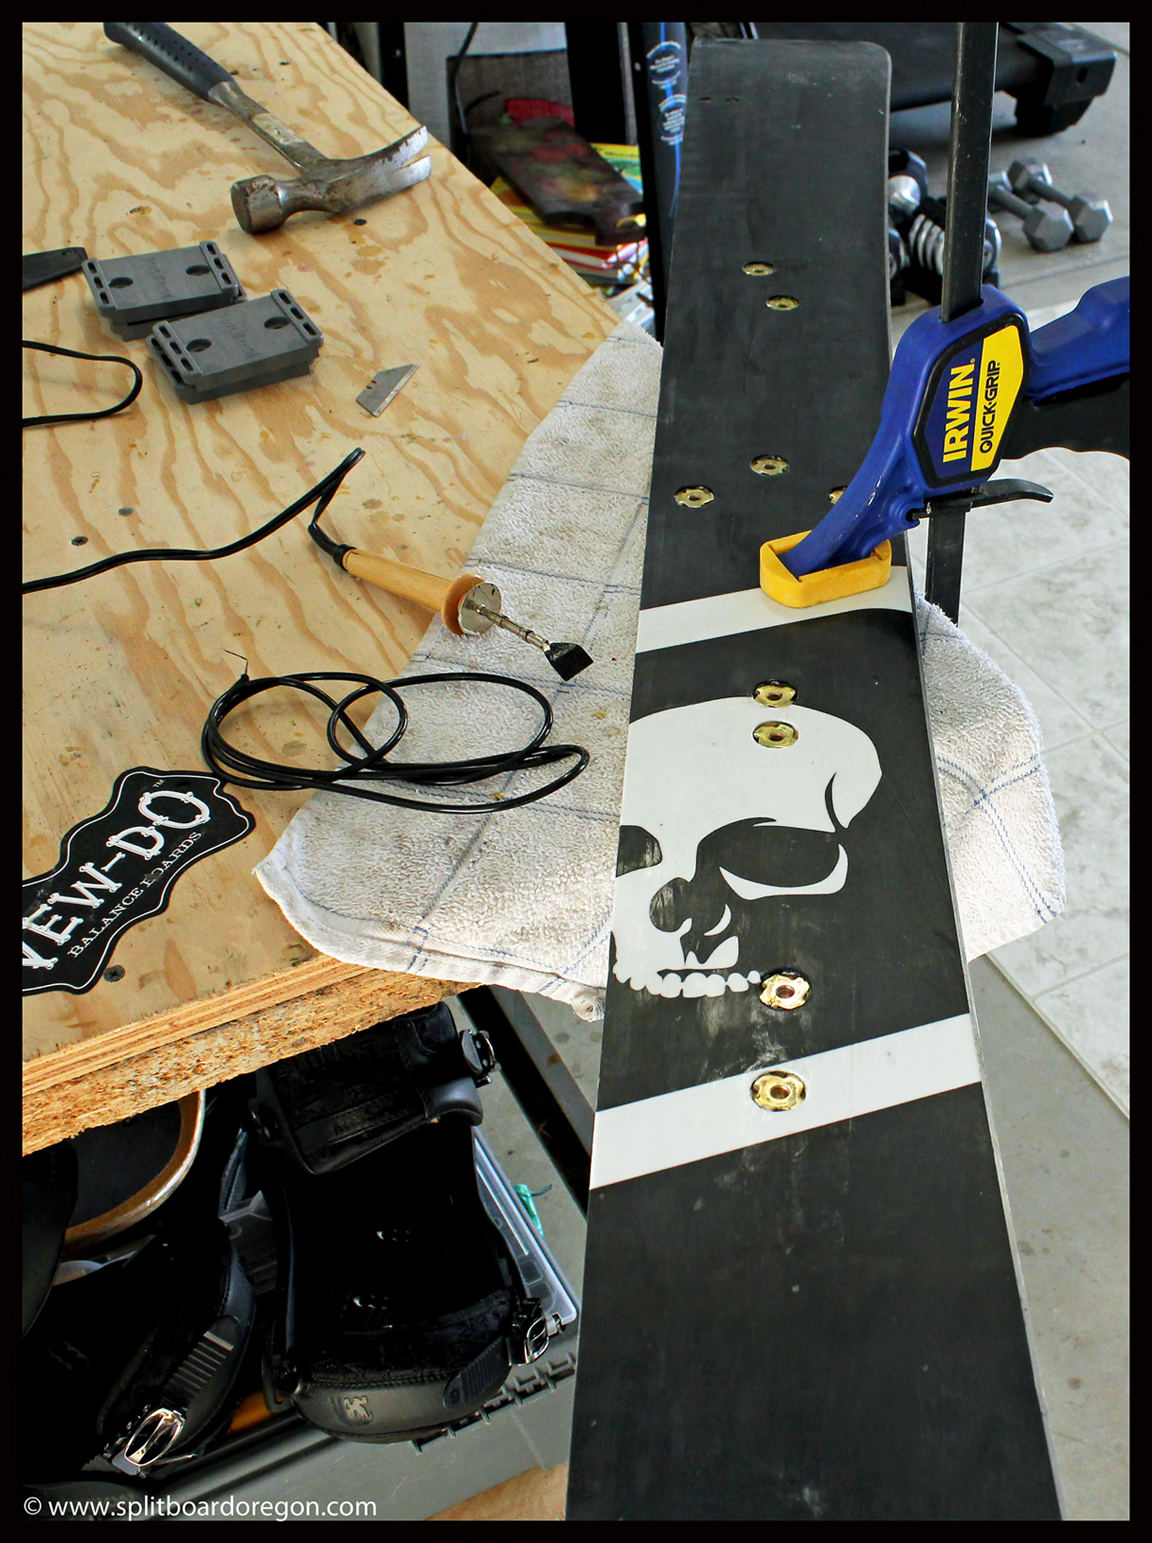 Board half with t-nuts in place